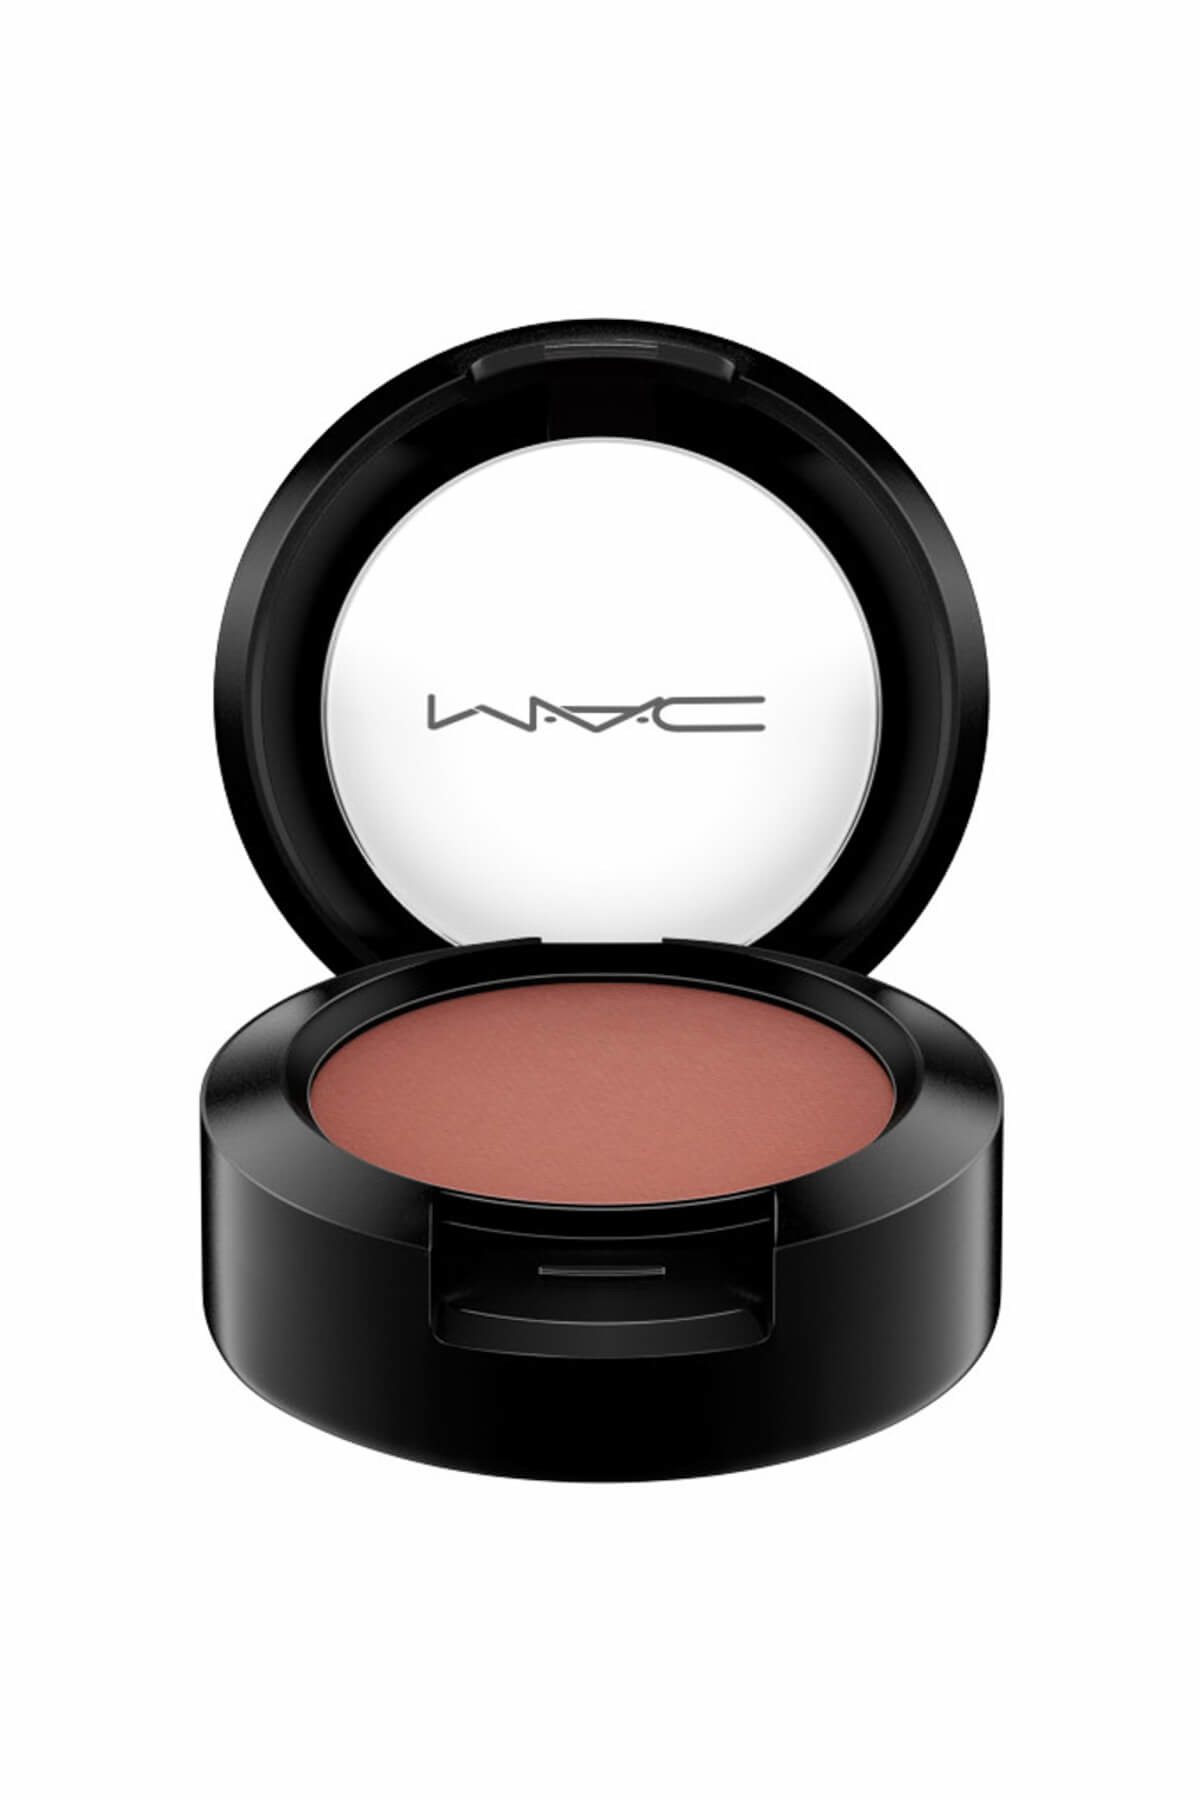 M.A.C Göz Farı - Eye Shadow Brown Script 1.5 g 773602134045 2